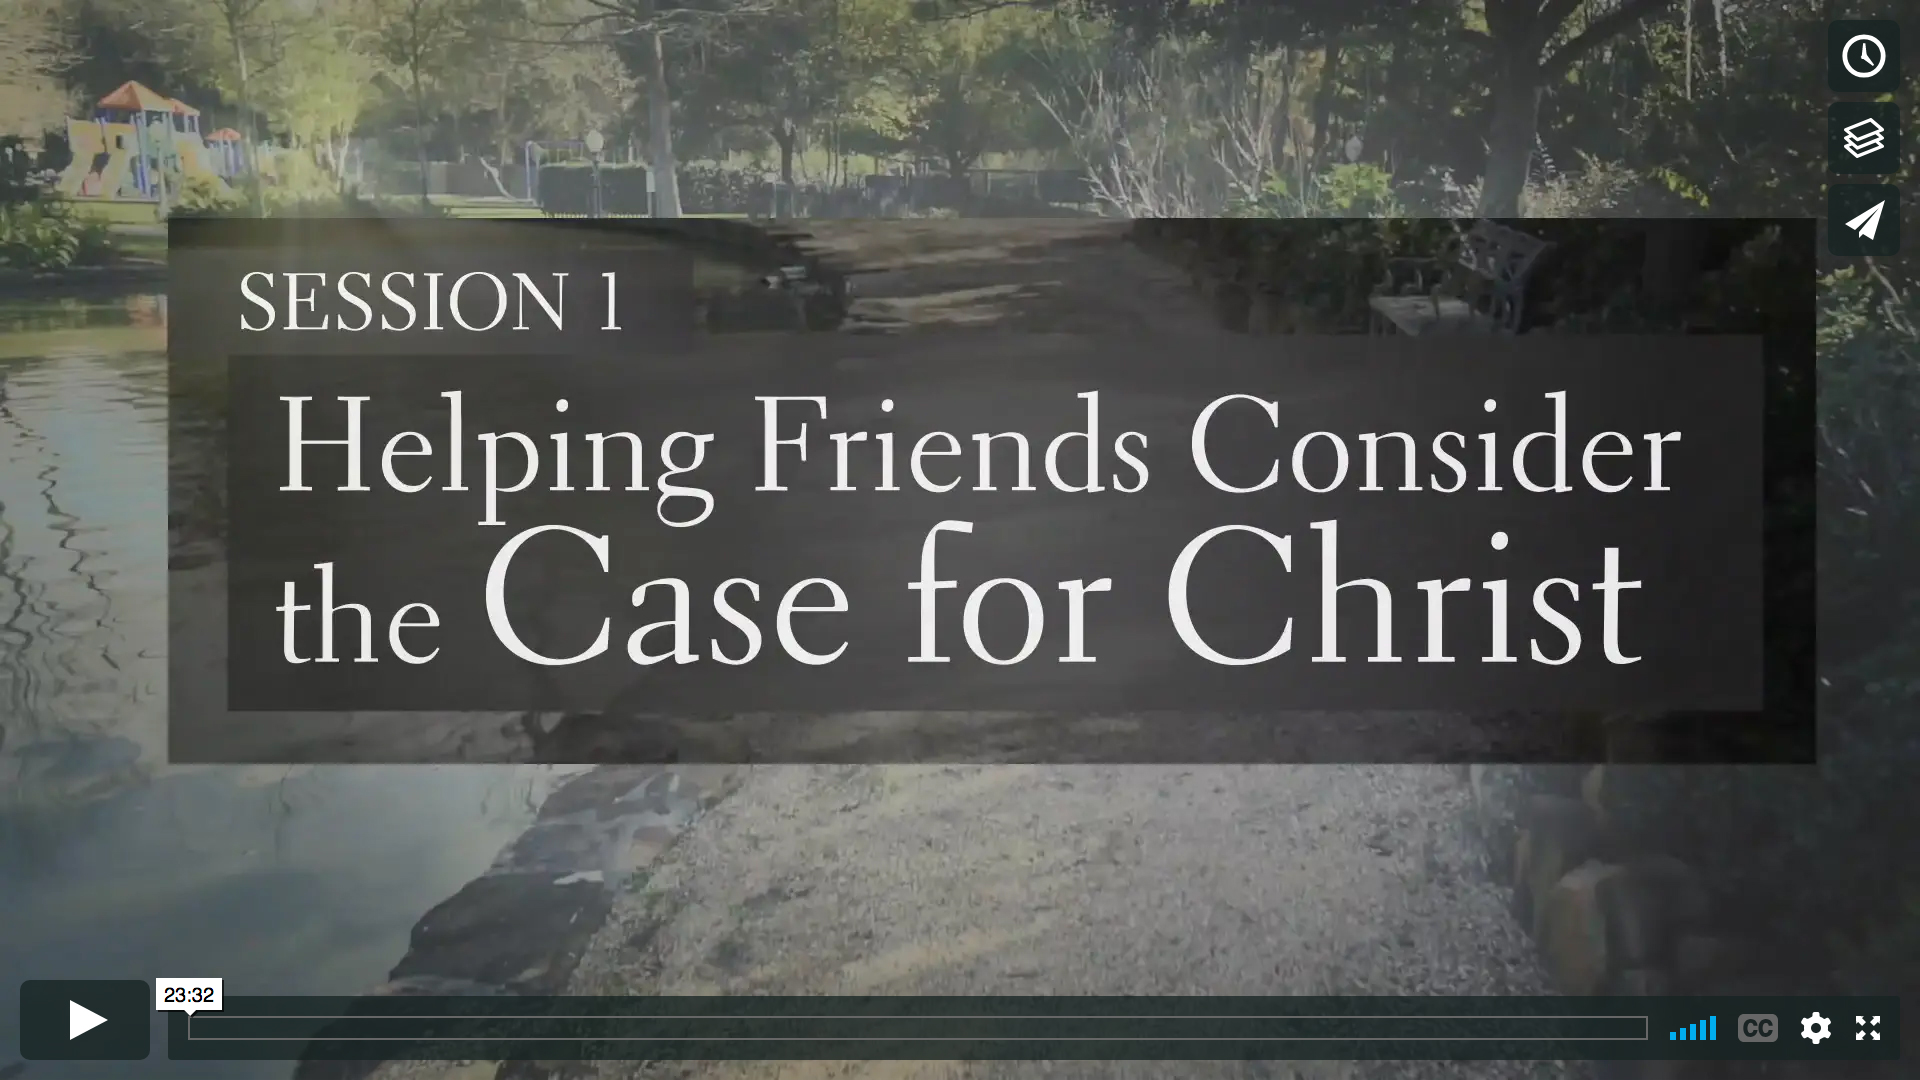 Session 1 - Helping Friends Consider the Case for Christ